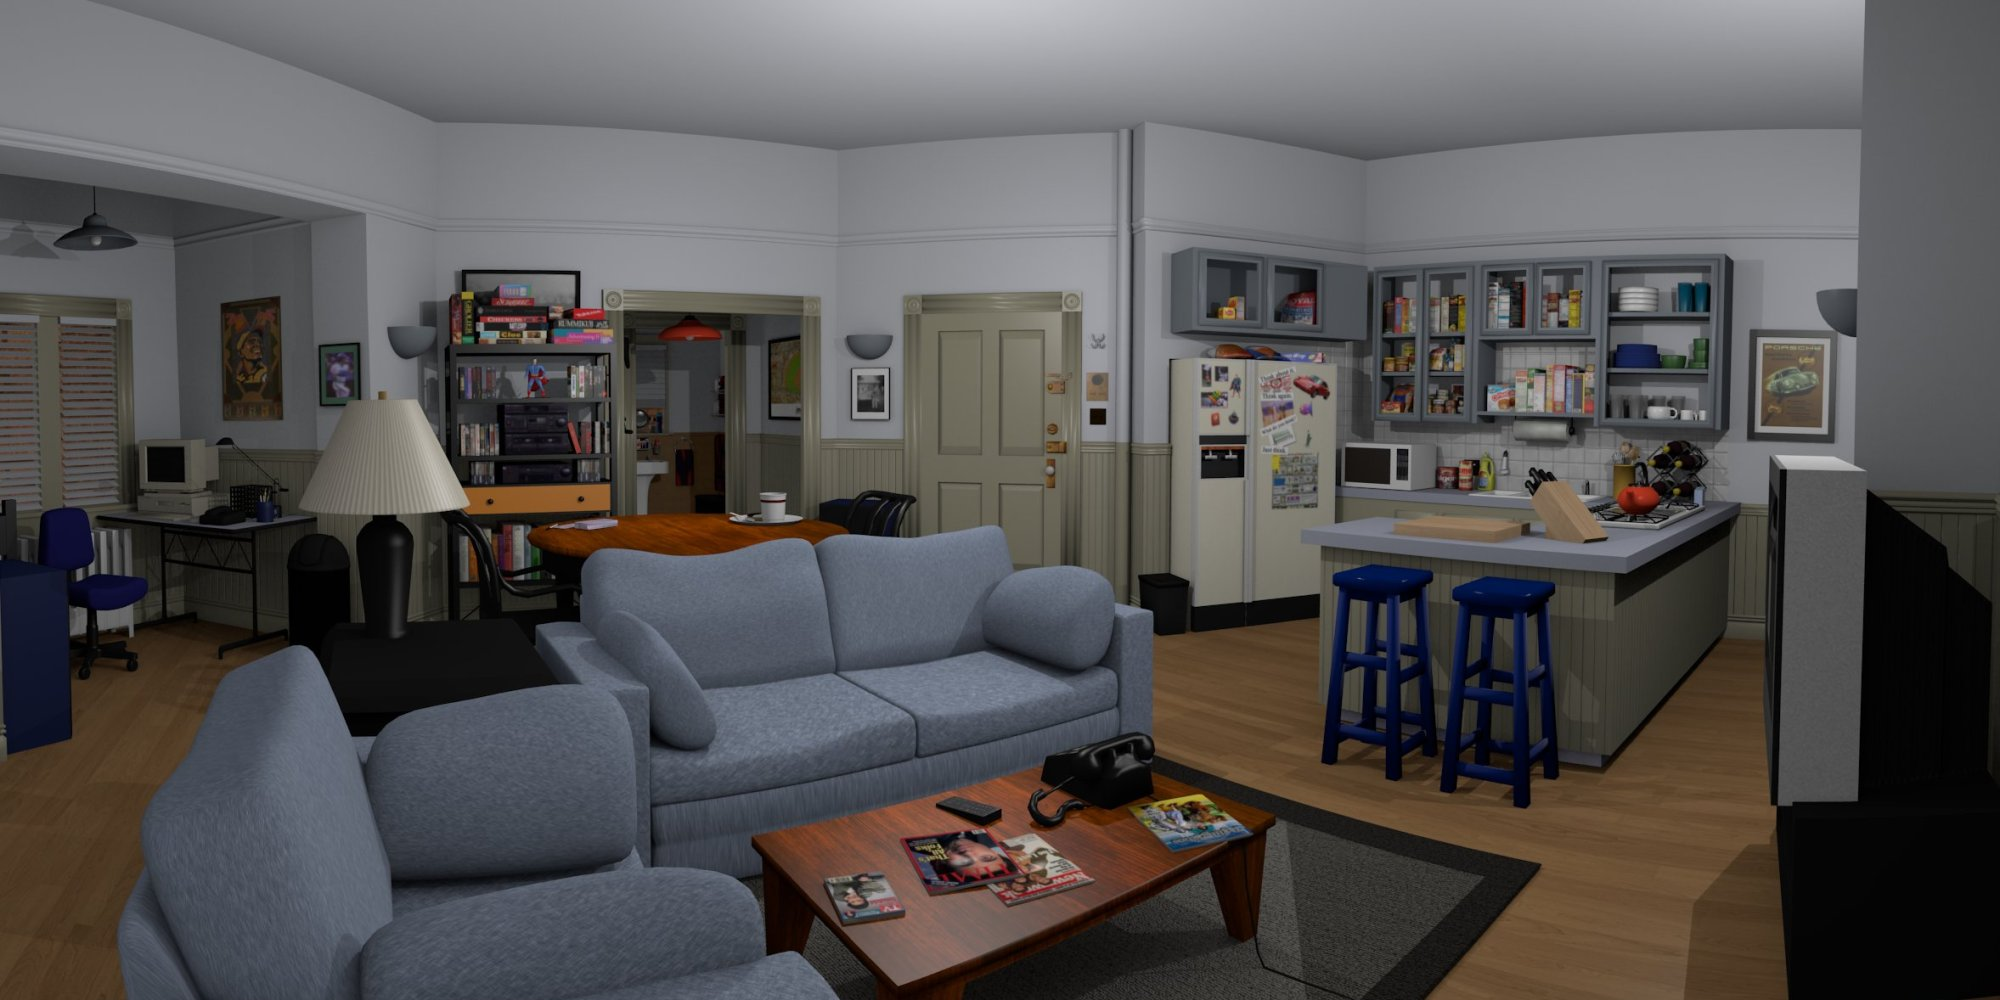 Walk Through The 39 Seinfeld 39 Apartment With This Very